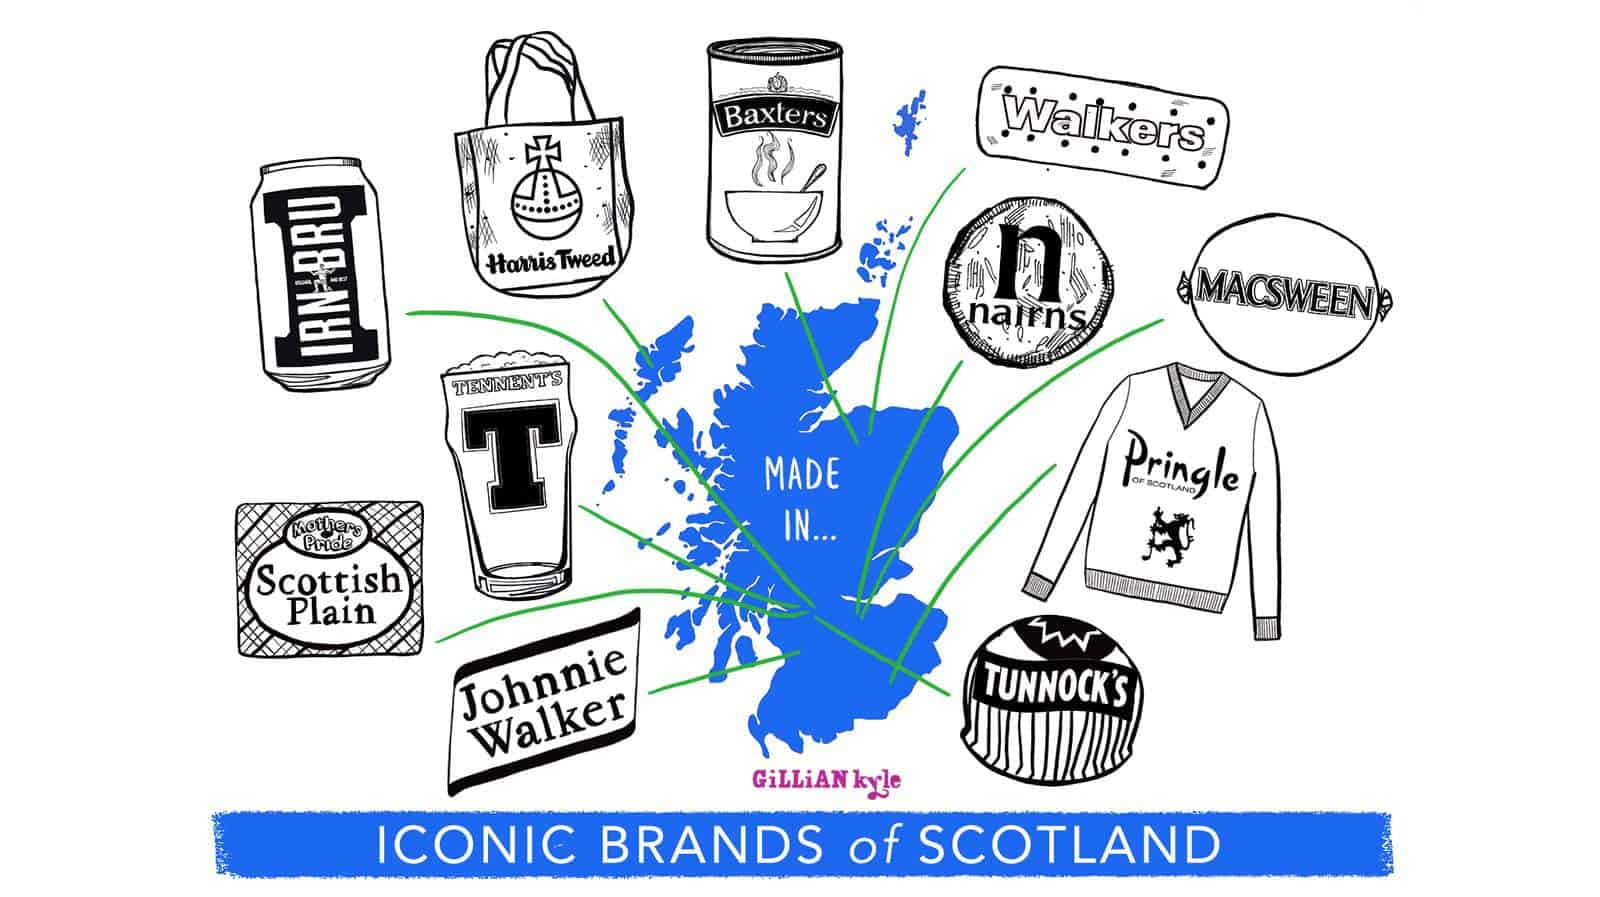 iconic brands of Scotland